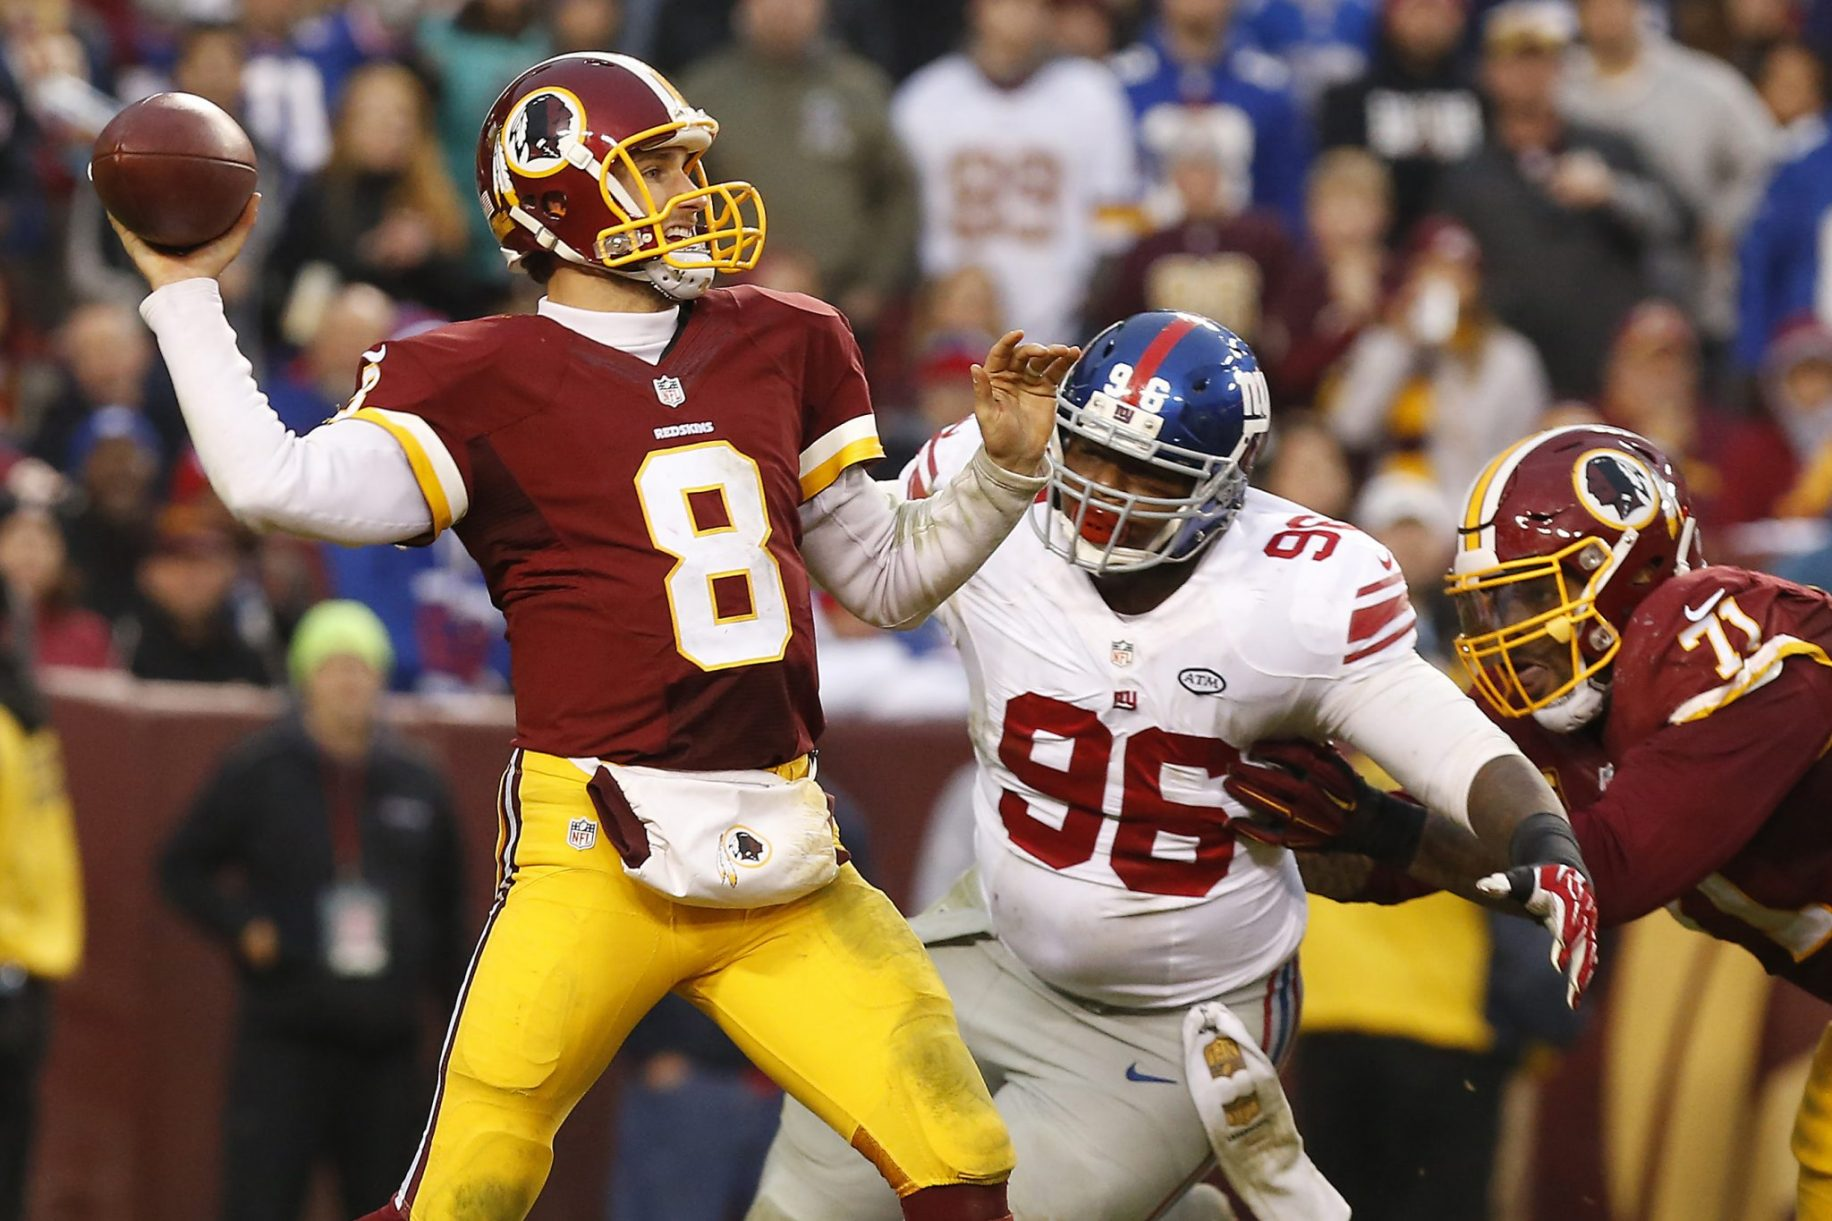 New York Giants: Can Jay Bromley Fill the Void that Johnathan Hankins Leaves Behind